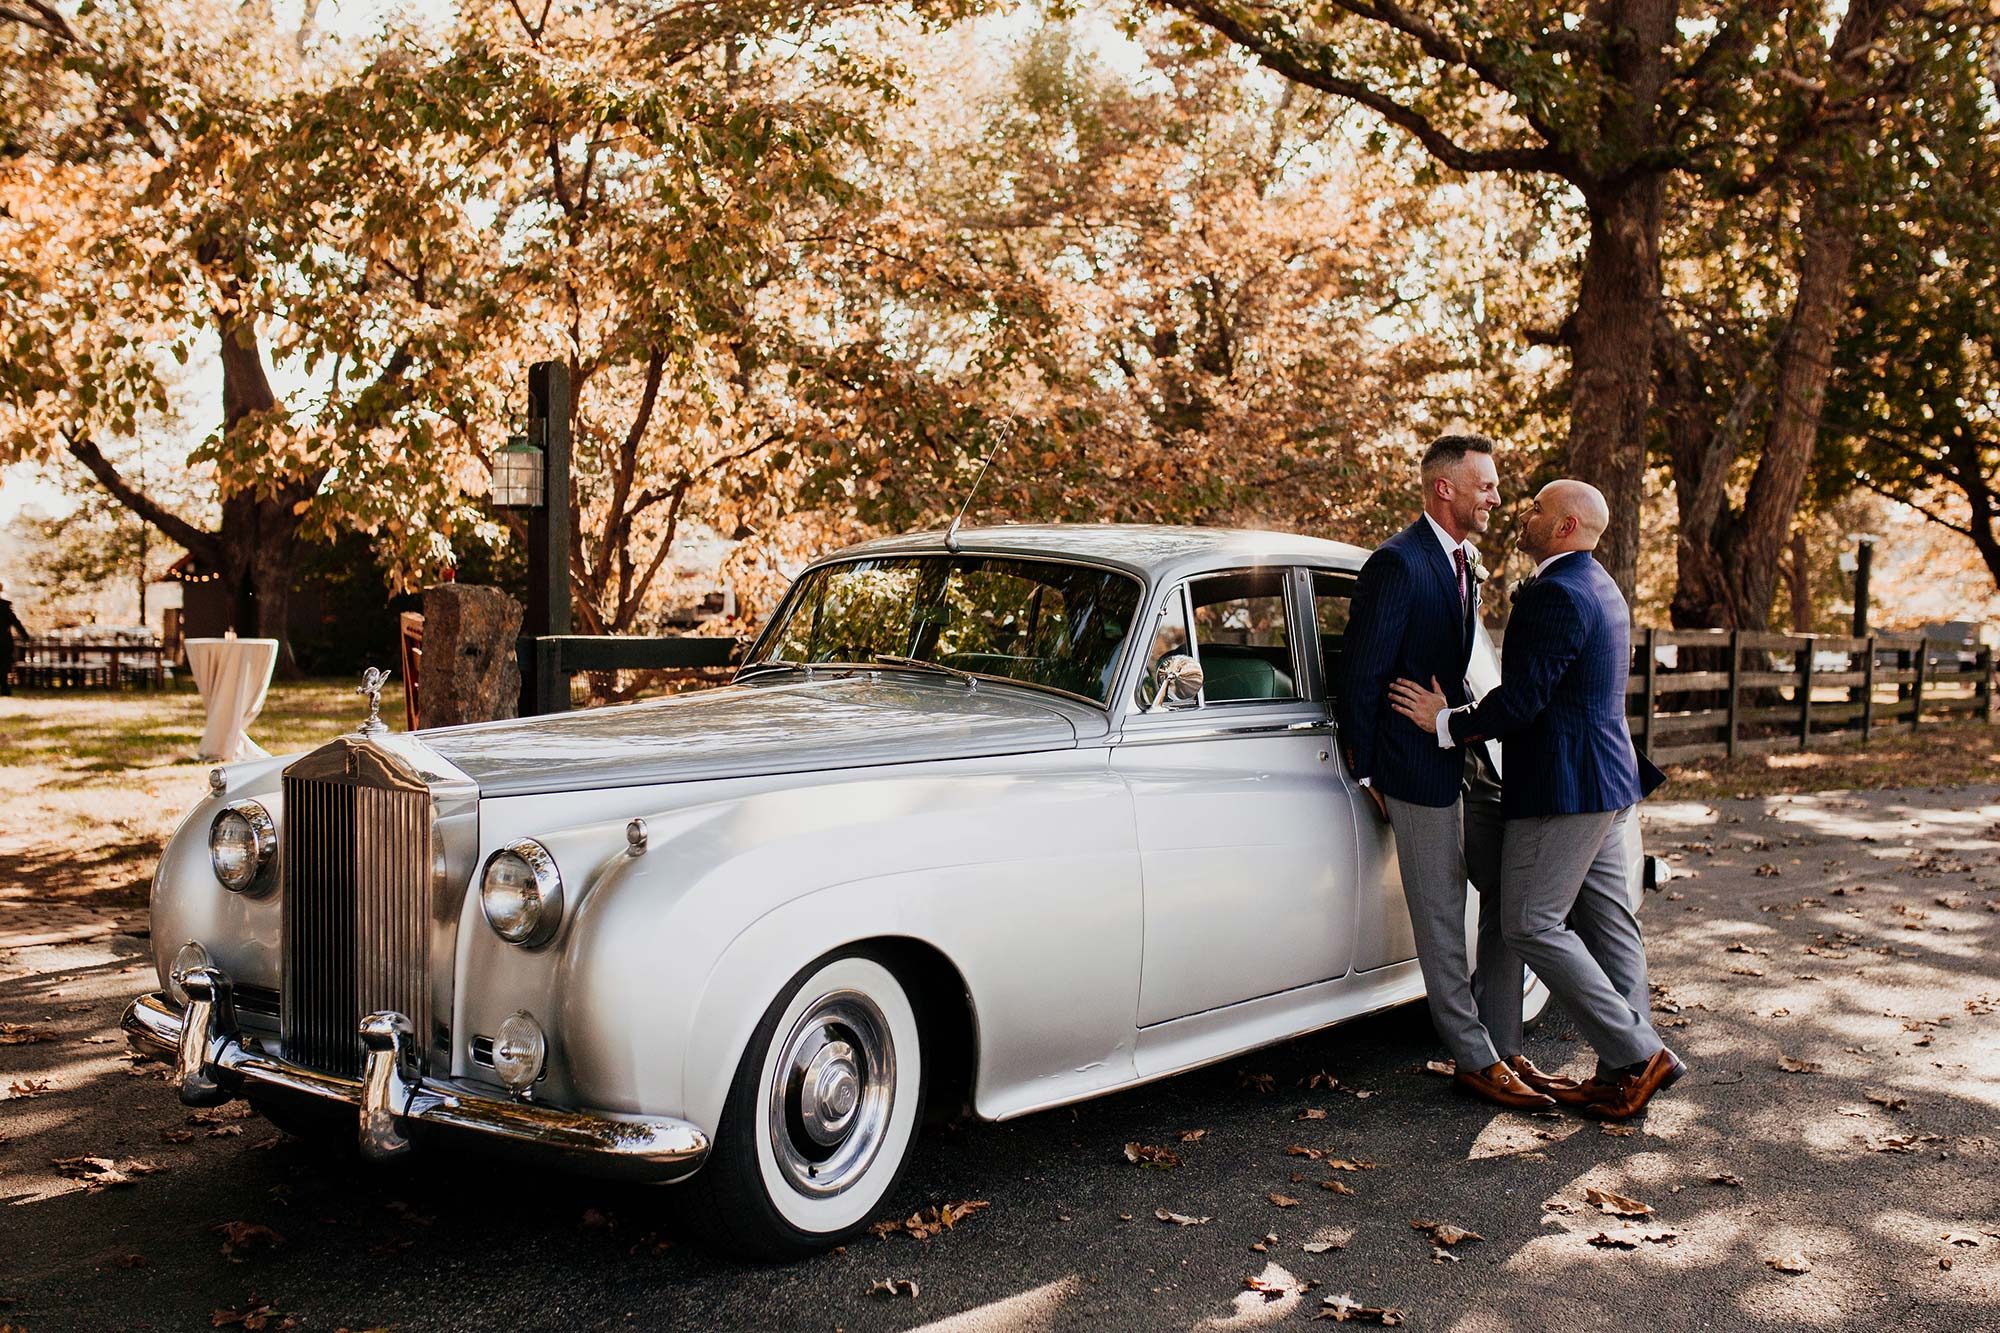 LGBTQ Louisville Kentucky Wedding at Hermitage Farm Crystal Ludwick Photo couple by vintage car